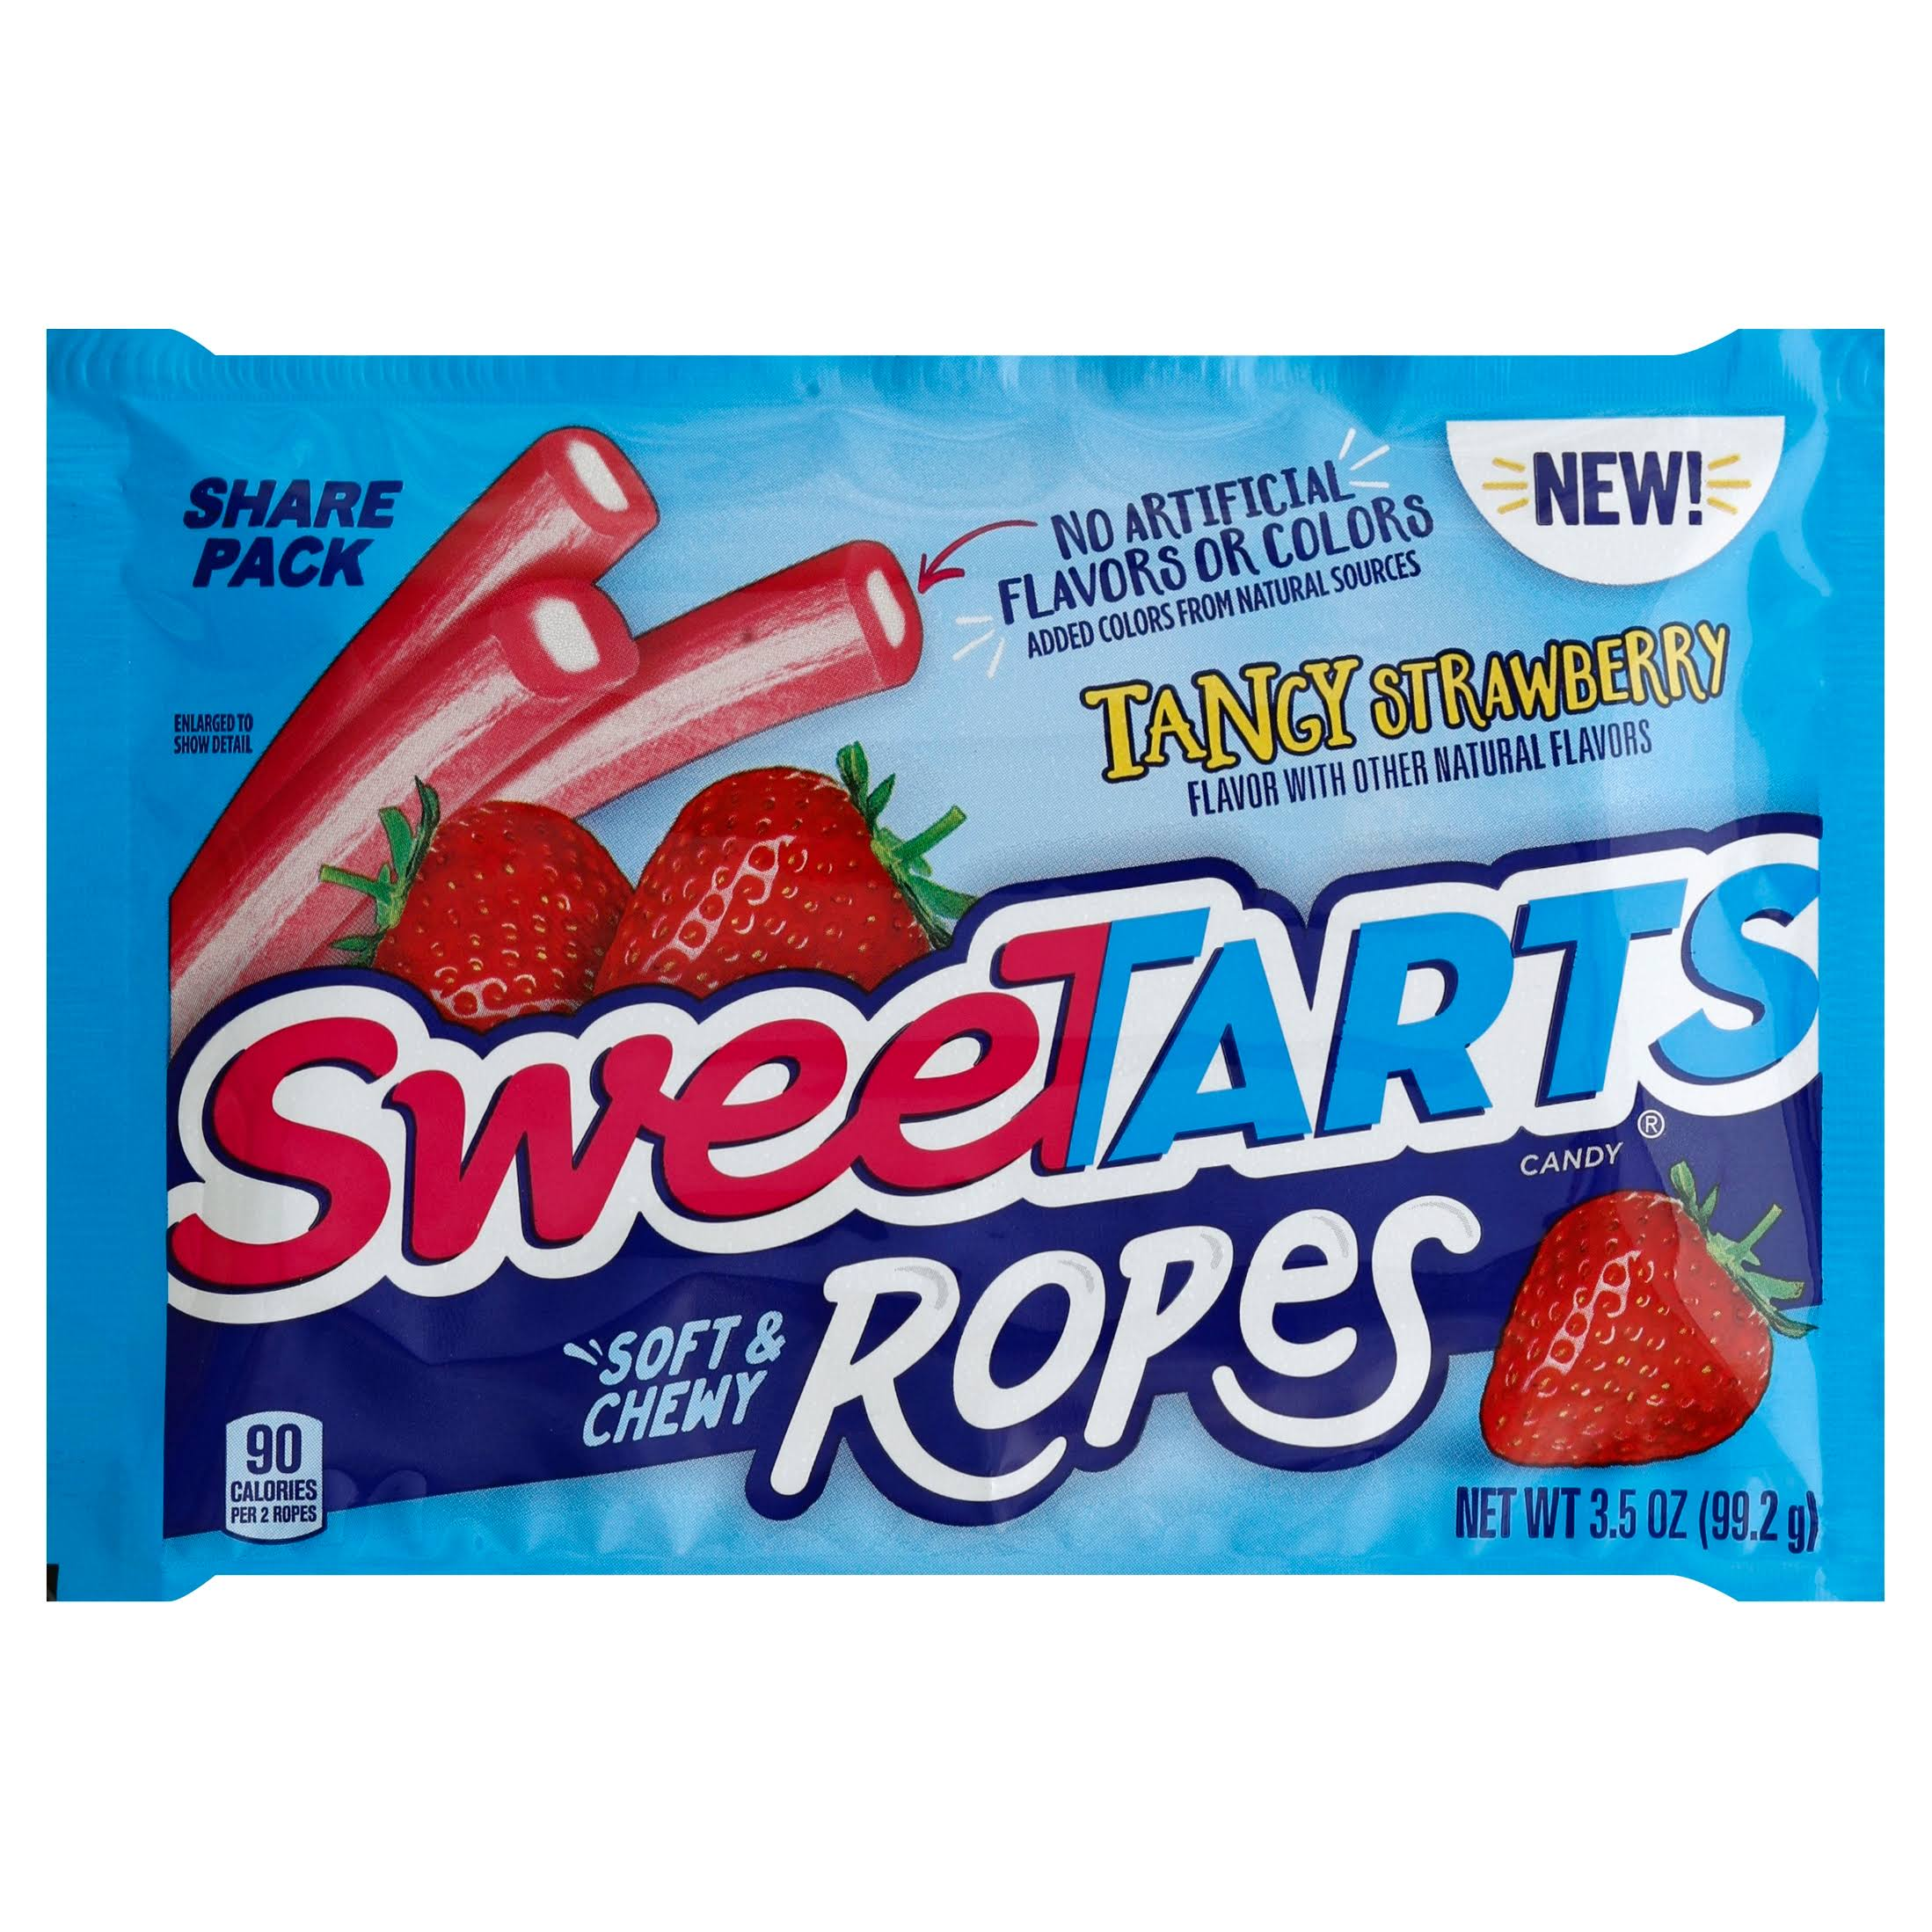 Sweetarts Candy, Soft & Chewy Ropes, Tangy Strawberry, Share Pack - 3.5 oz